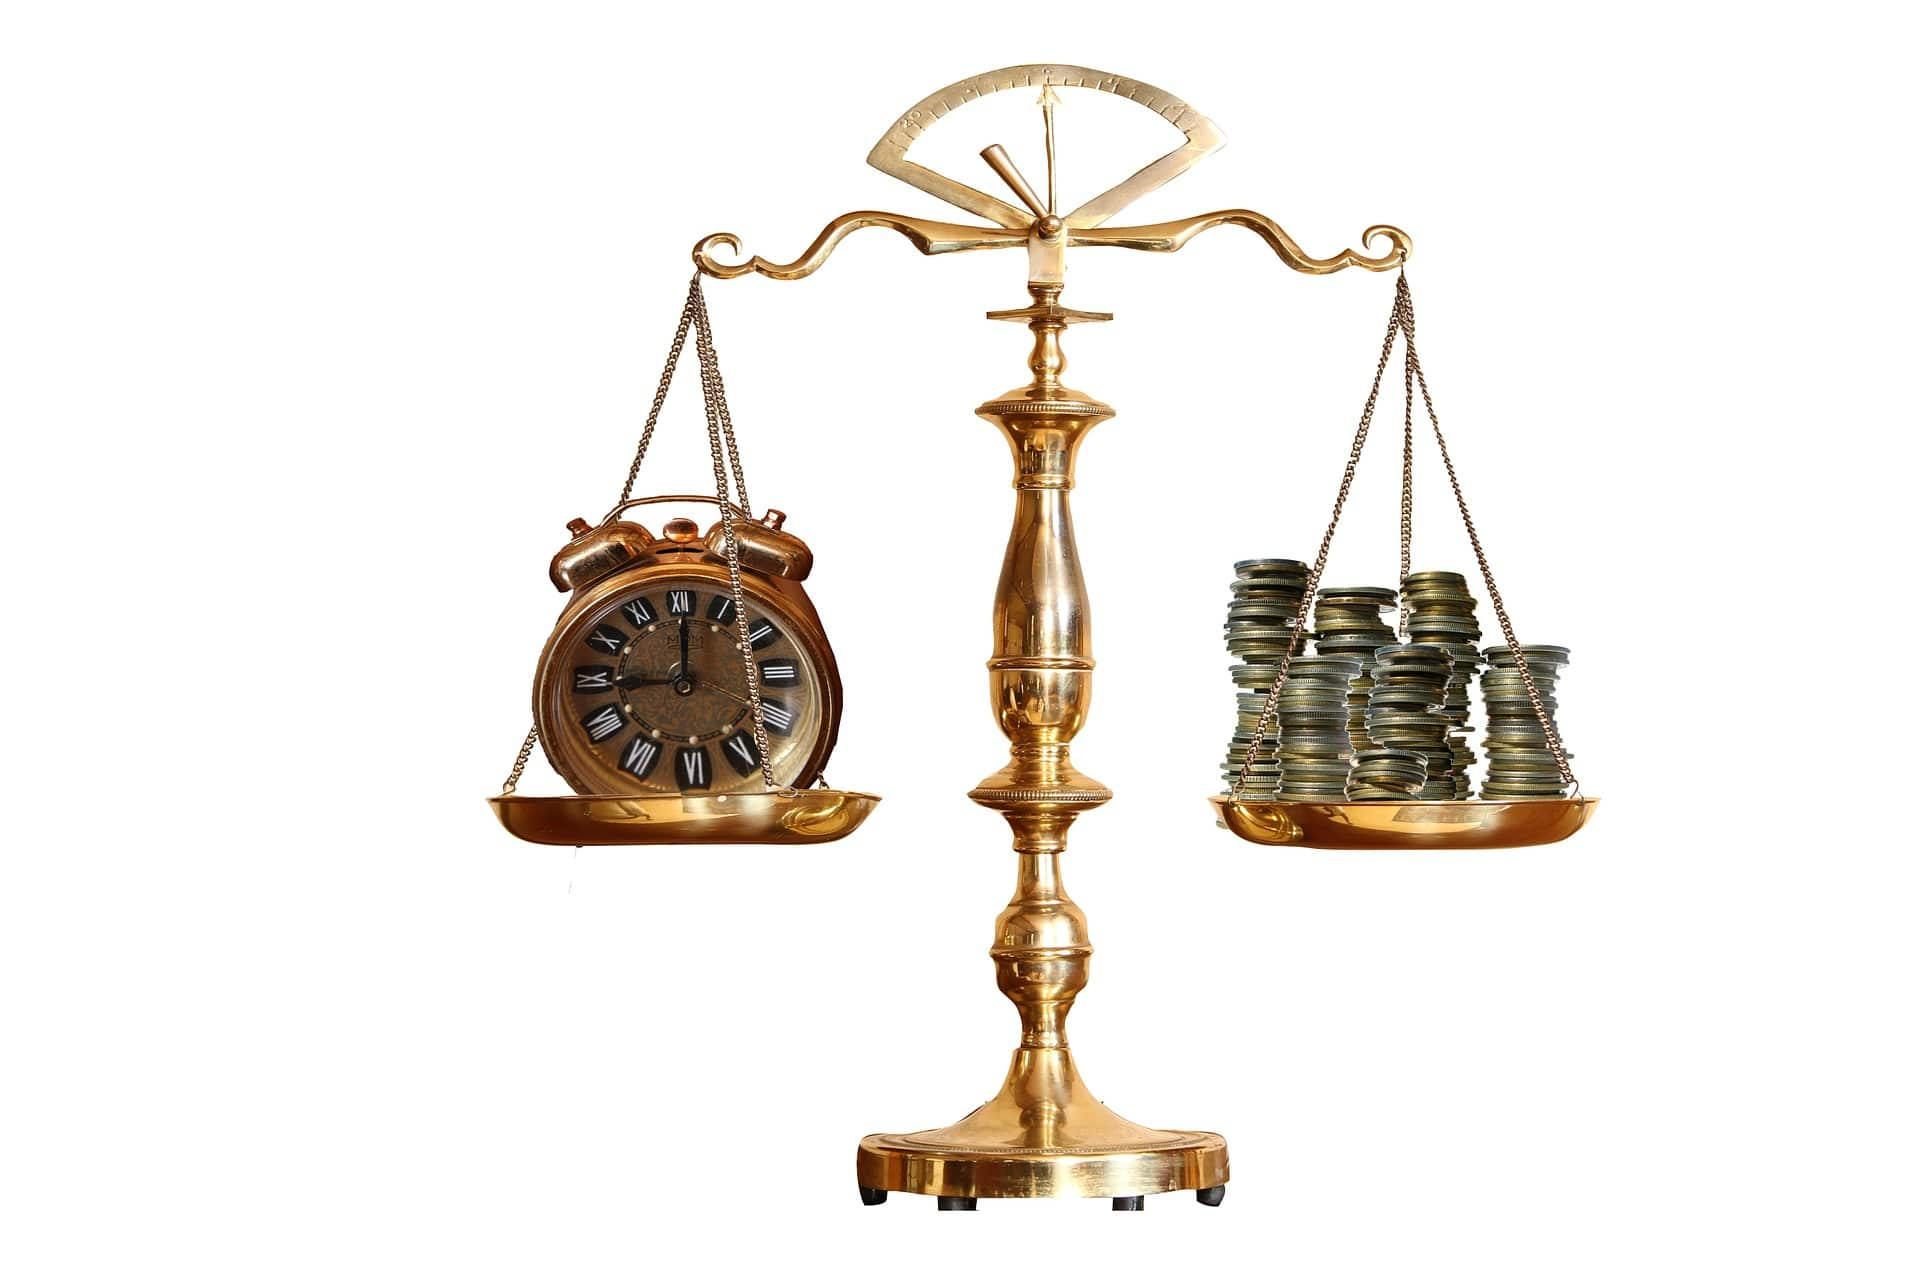 can you dissolve a trust - scales with clock on one side and money on other side